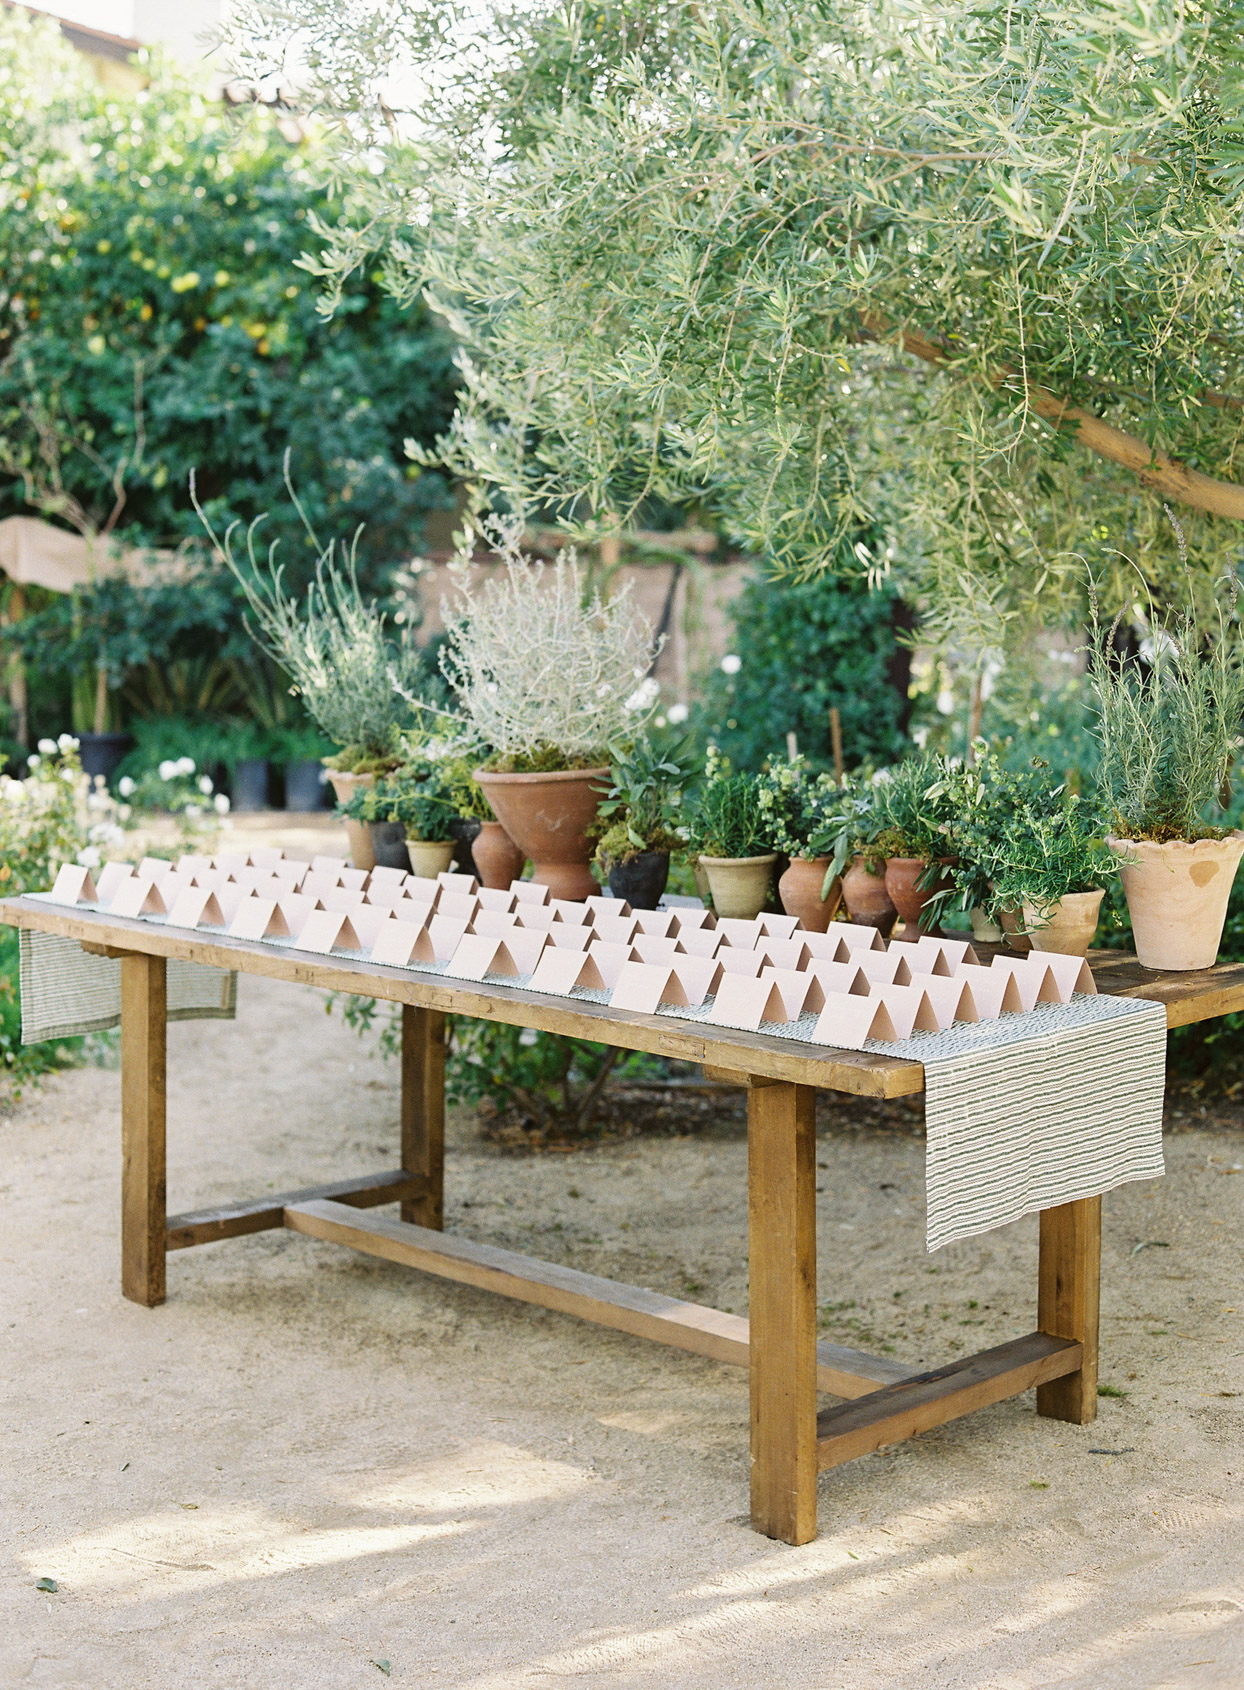 escort cards on wooden table outdoors surrounded by greenery